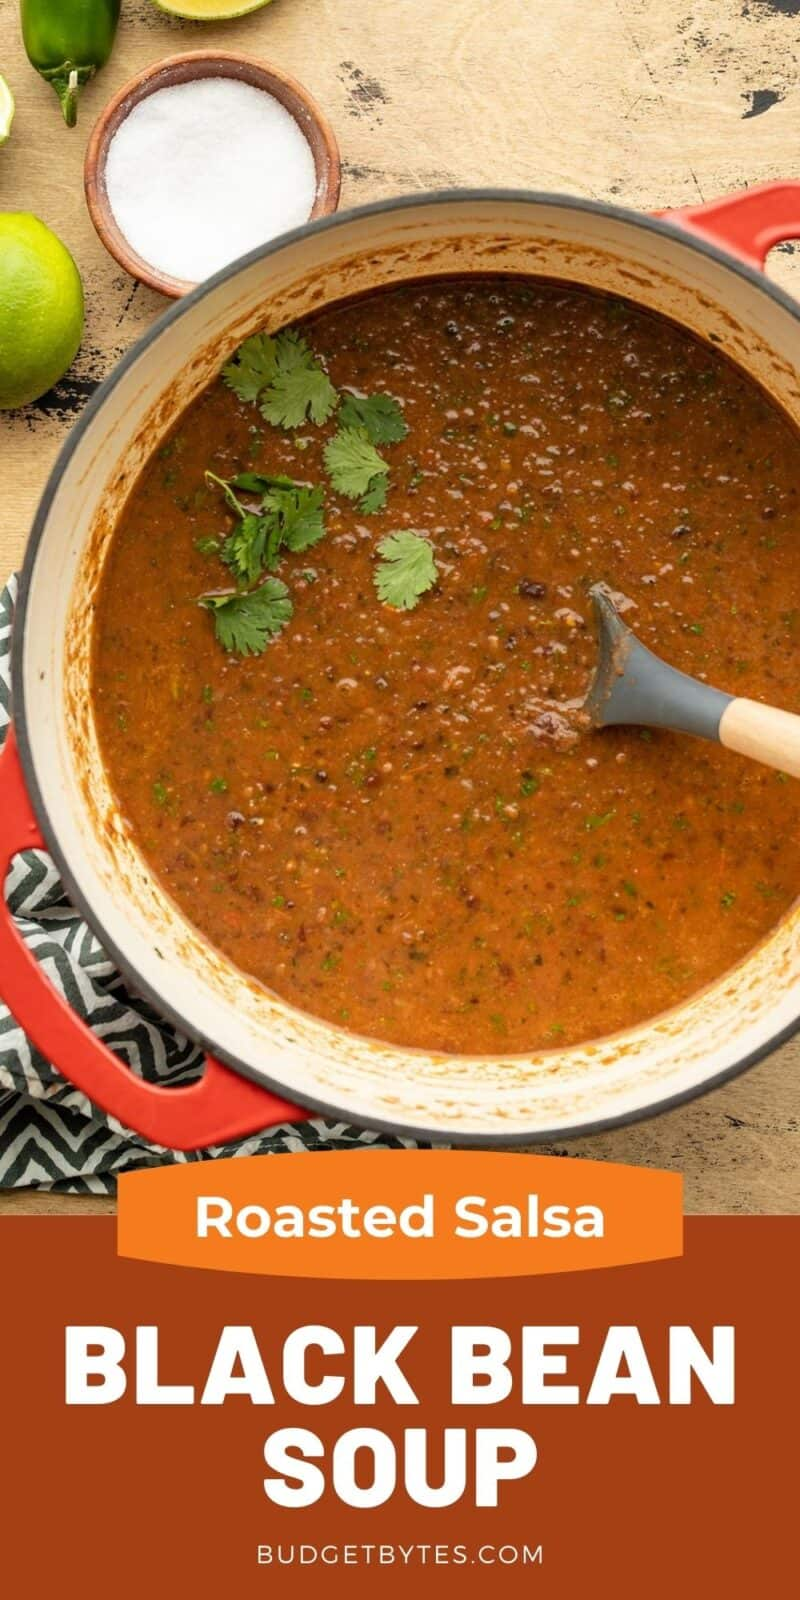 A pot full of roasted salsa and black bean soup, title text at the bottom